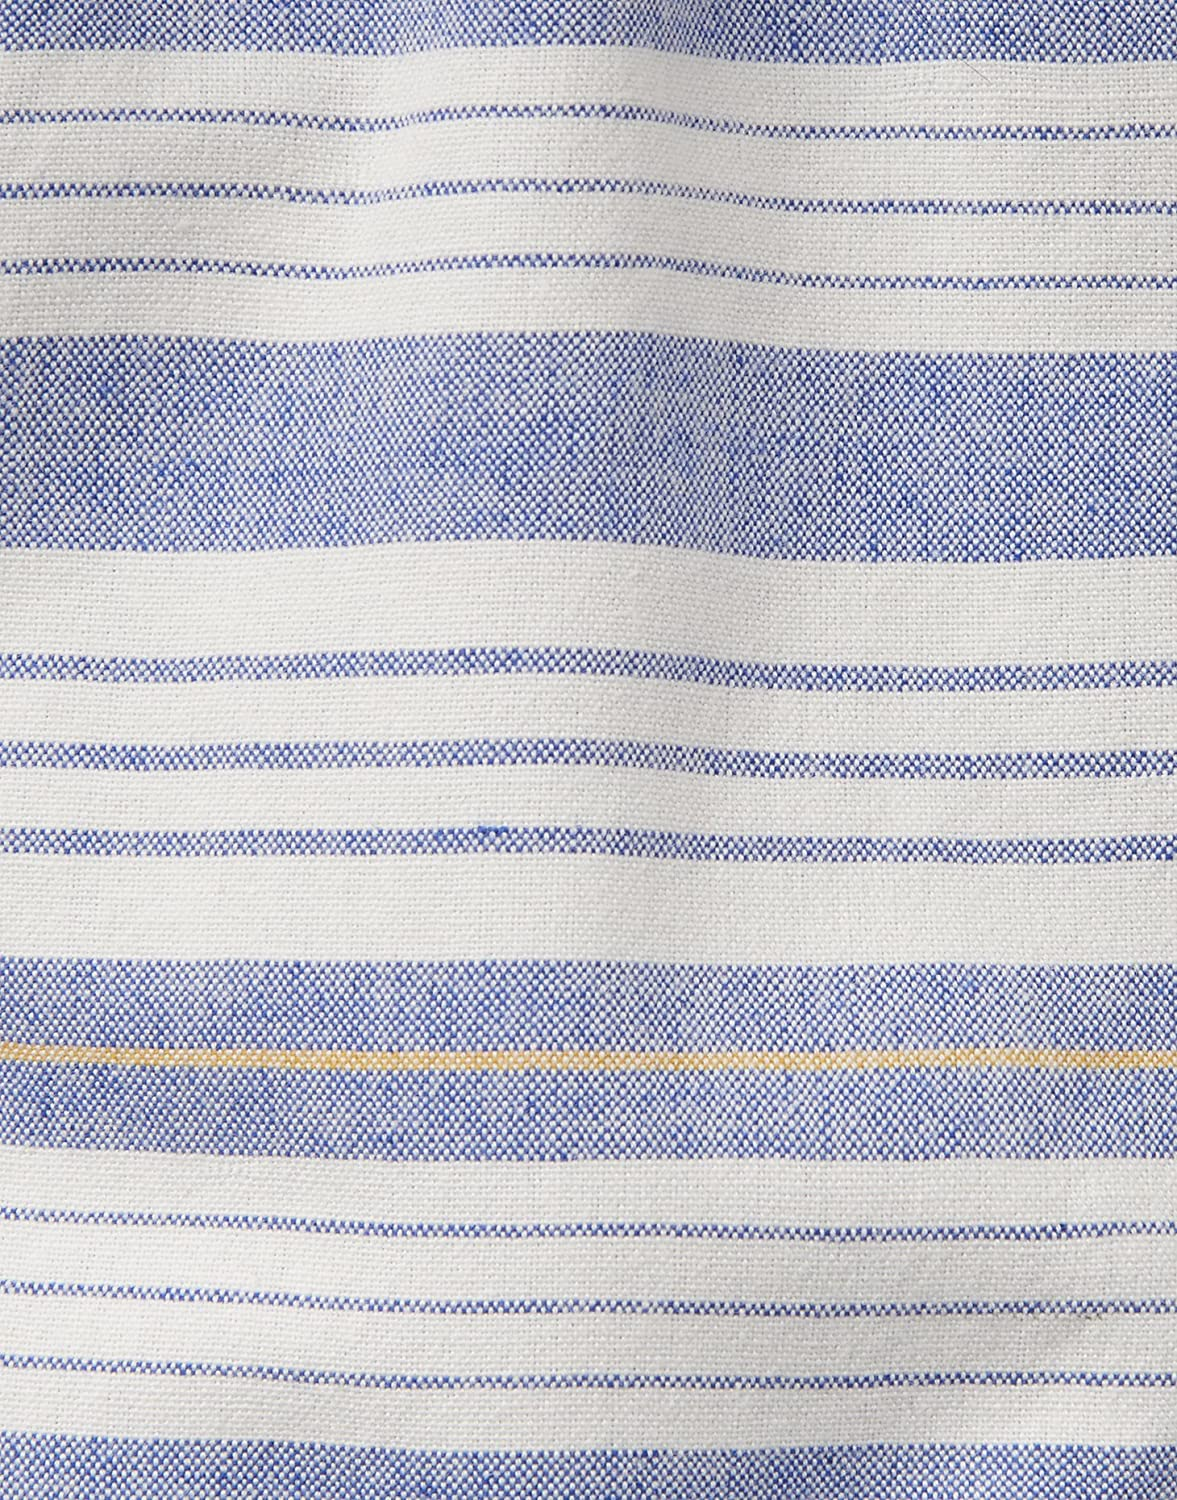 Joules Baby Toddler Boys Huey Cotton Woven Shorts 18-24 Months, Blue Striped